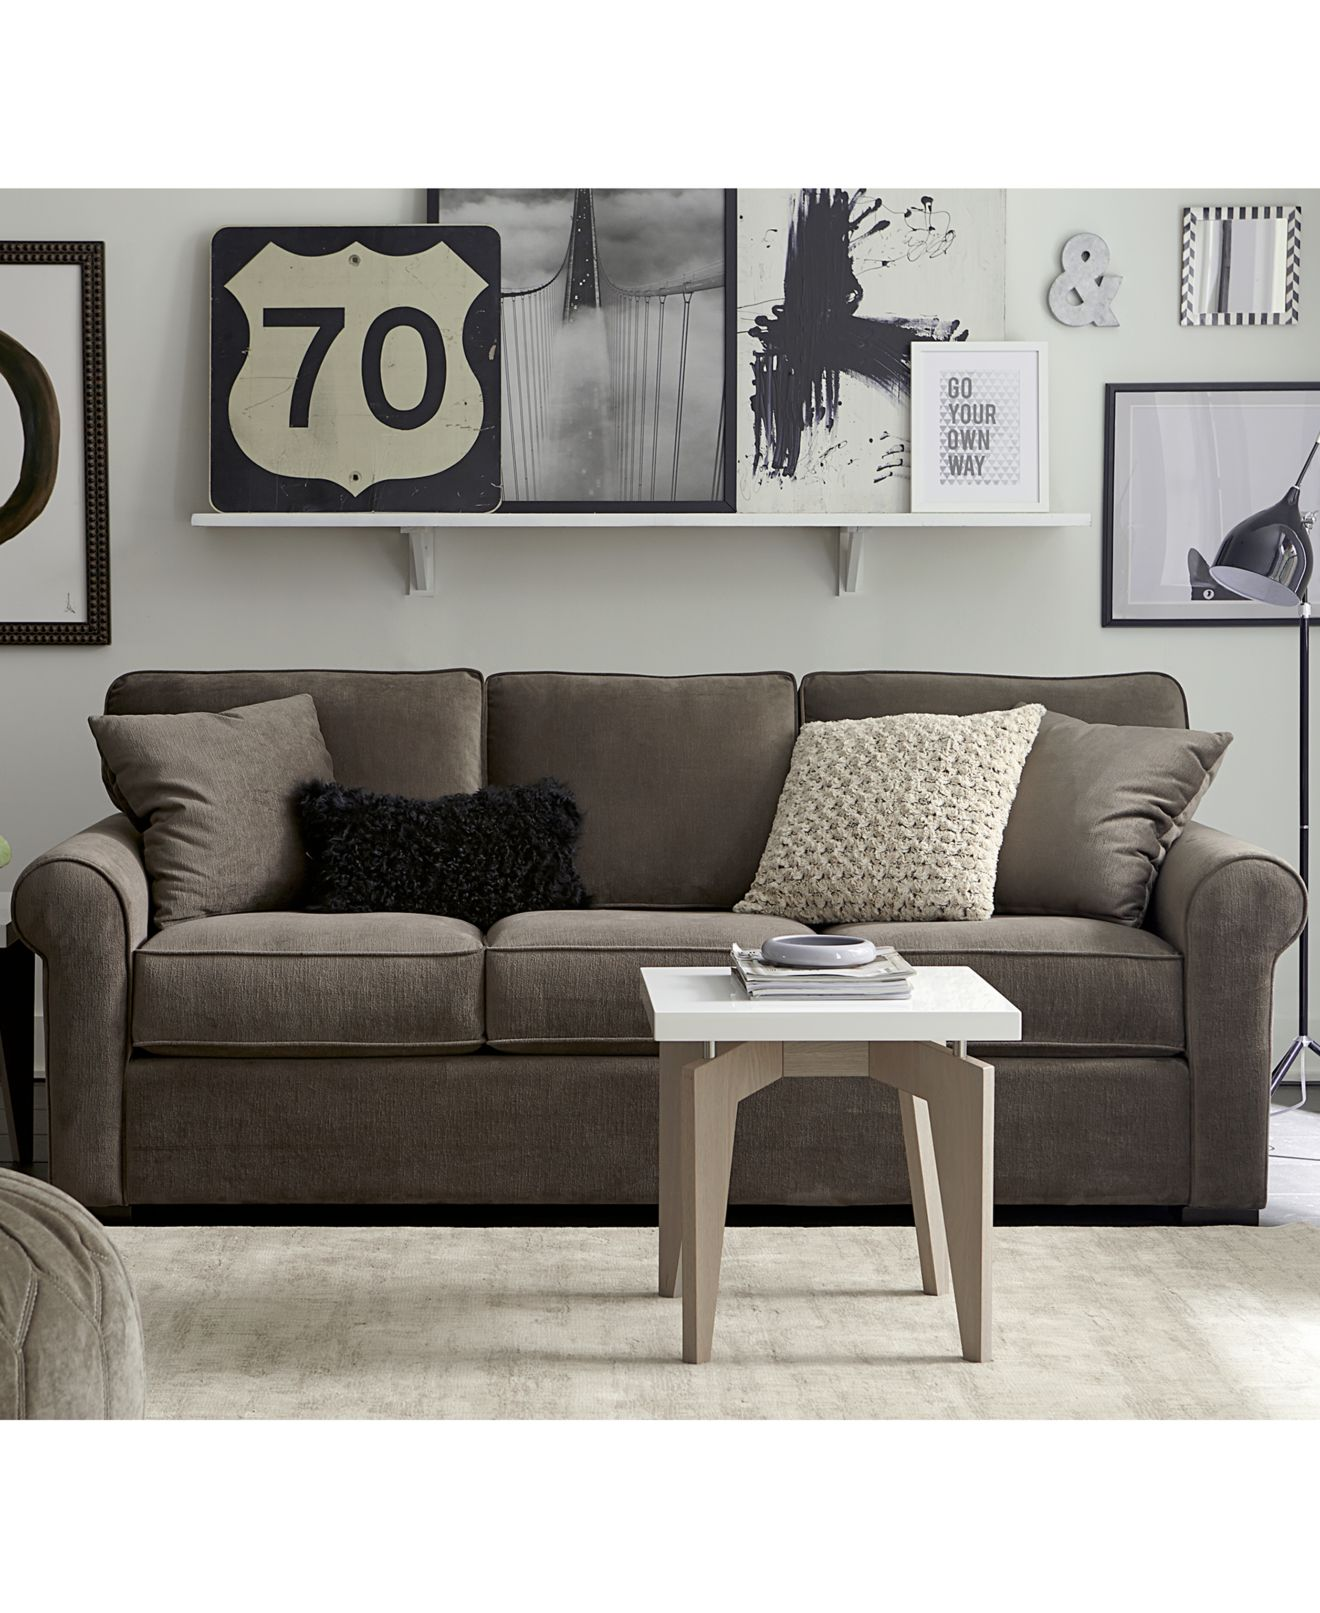 remo ii fabric sofa living room furniture collection - furniture